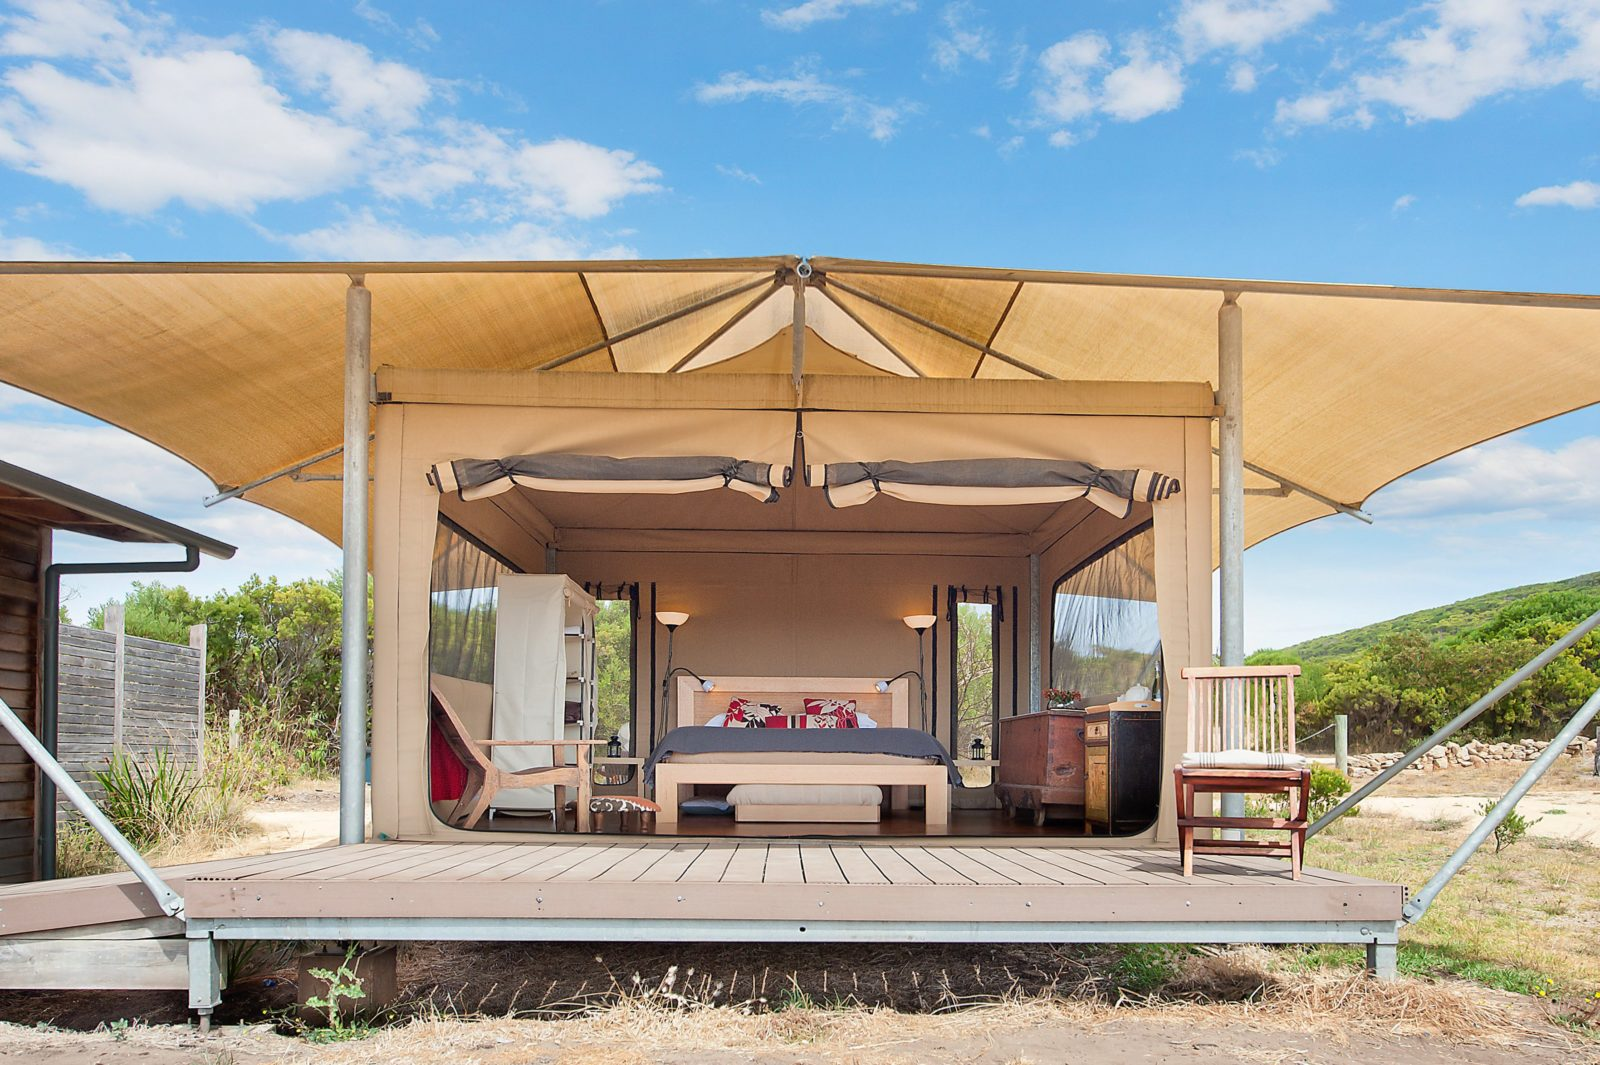 Pebble Point Glamping Tent